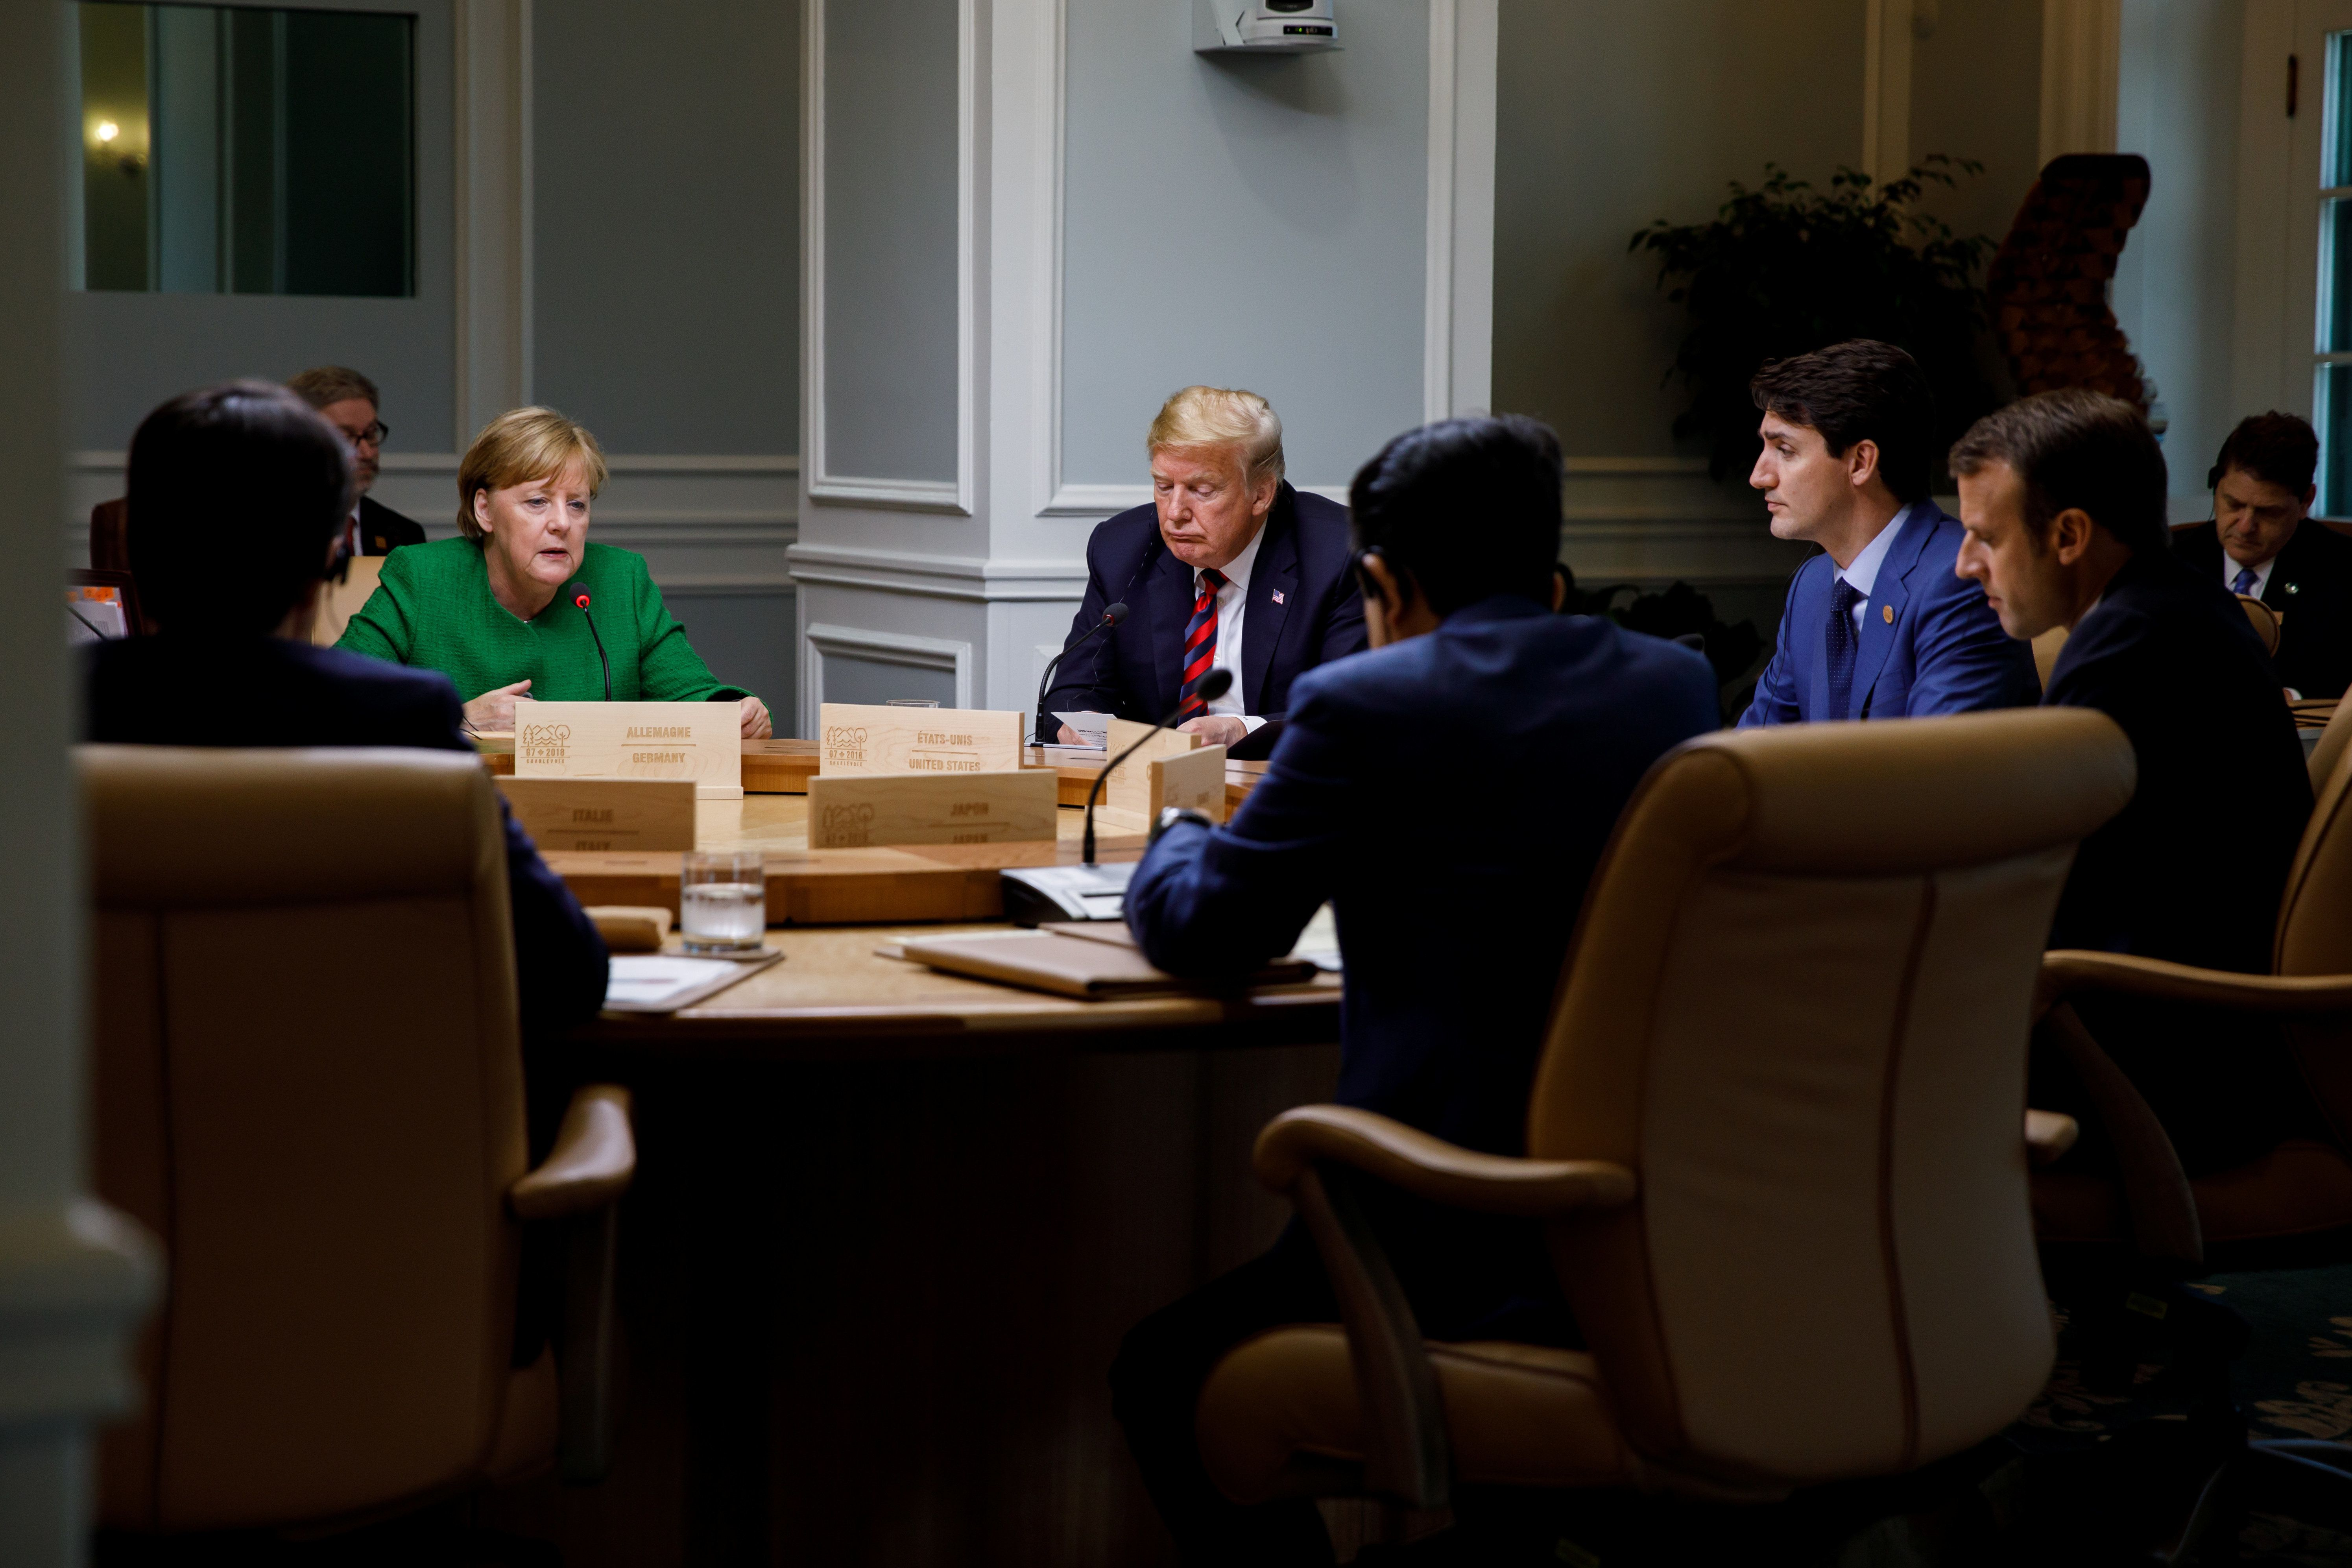 Canada's Prime Minister Justin Trudeau and G7 leaders France's President Emmanuel Macron, Germany's Chancellor Angela Merkel, Japan's Prime Minister Shinzo Abe and U.S. President Donald Trump take part in a working session on the first day of the G7 meeting in Charlevoix city of La Malbaie, Quebec, Canada, June 8, 2018. Picture taken June 8, 2018.  Adam Scotti/Prime Minister's Office/Handout via REUTERS. ATTENTION EDITORS - THIS IMAGE WAS PROVIDED BY A THIRD PARTY.